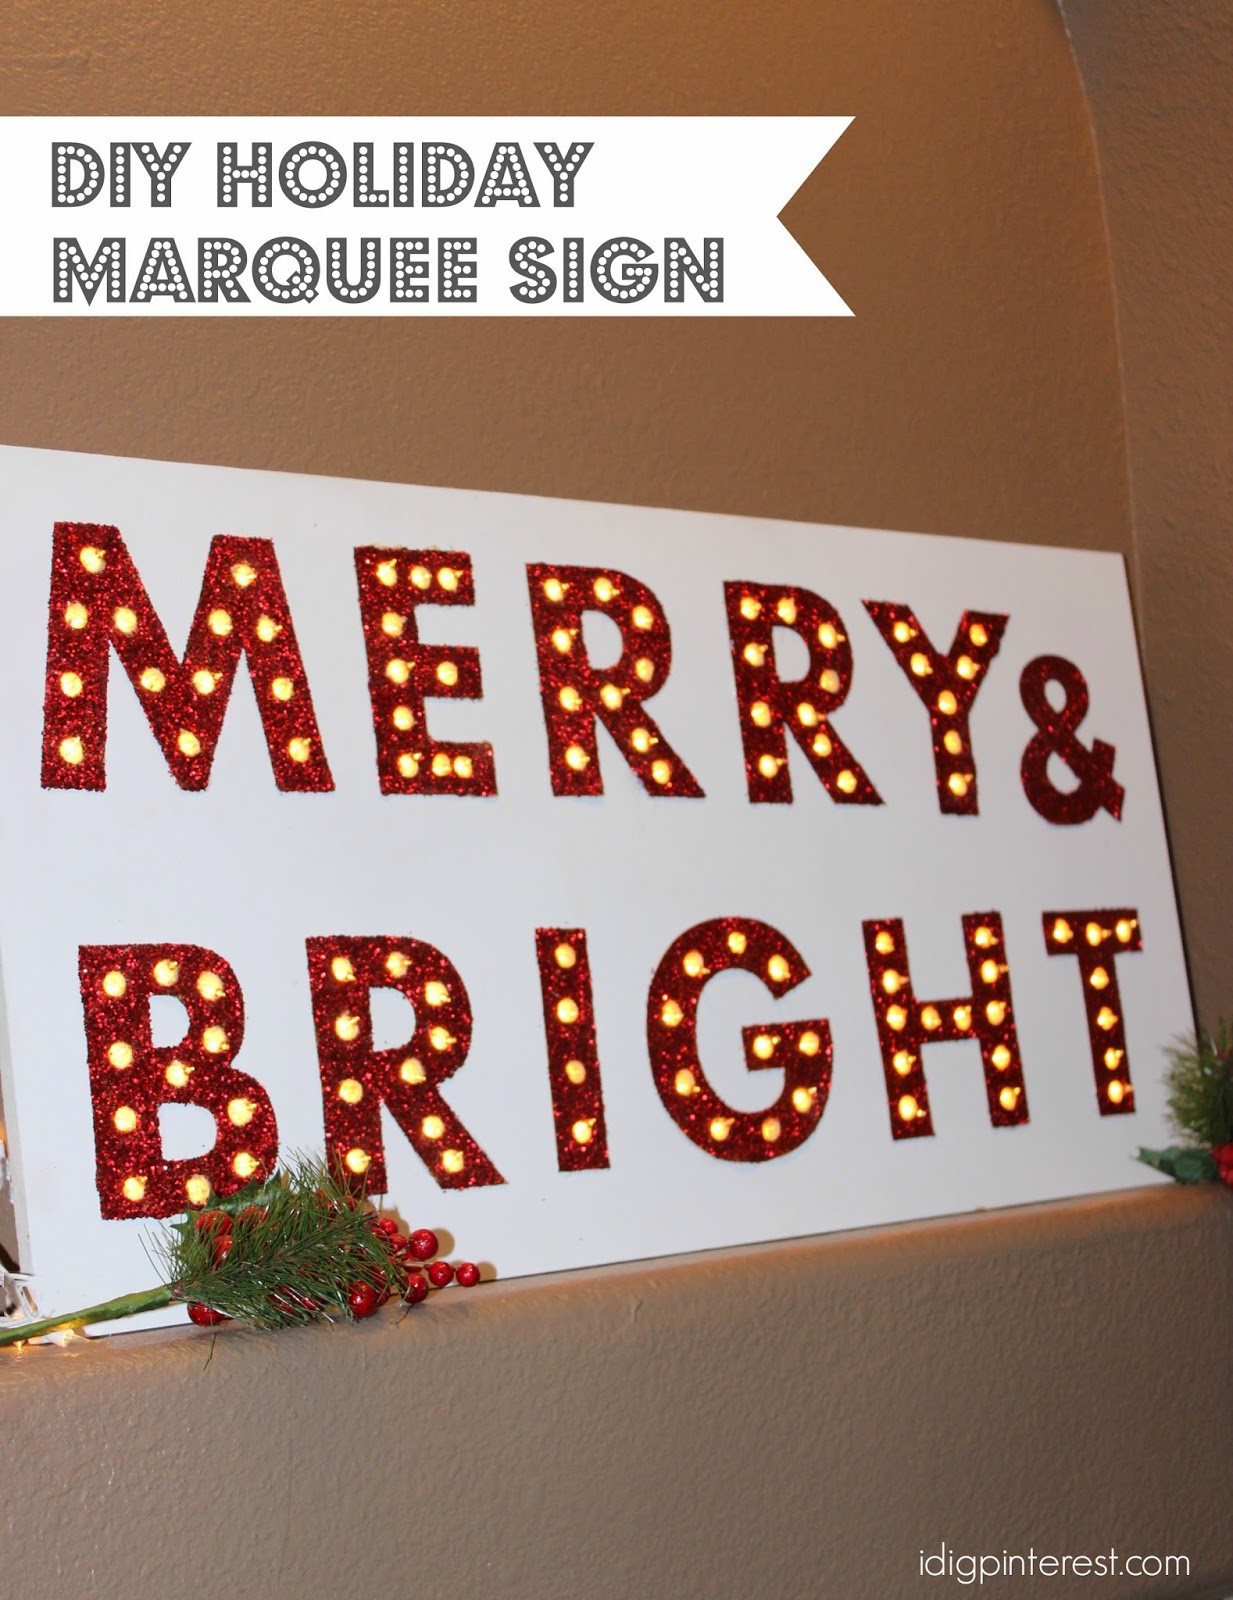 Diy Holiday Marquee And Let It Snow Sign  I Dig Pinterest. Trouble Signs Of Stroke. Street Warren Ohio Signs. Purpose Signs Of Stroke. Ladder Signs. Hemiplegic Migraine Signs. Cctv Signs Of Stroke. Chameleon Signs Of Stroke. Sfse Signs